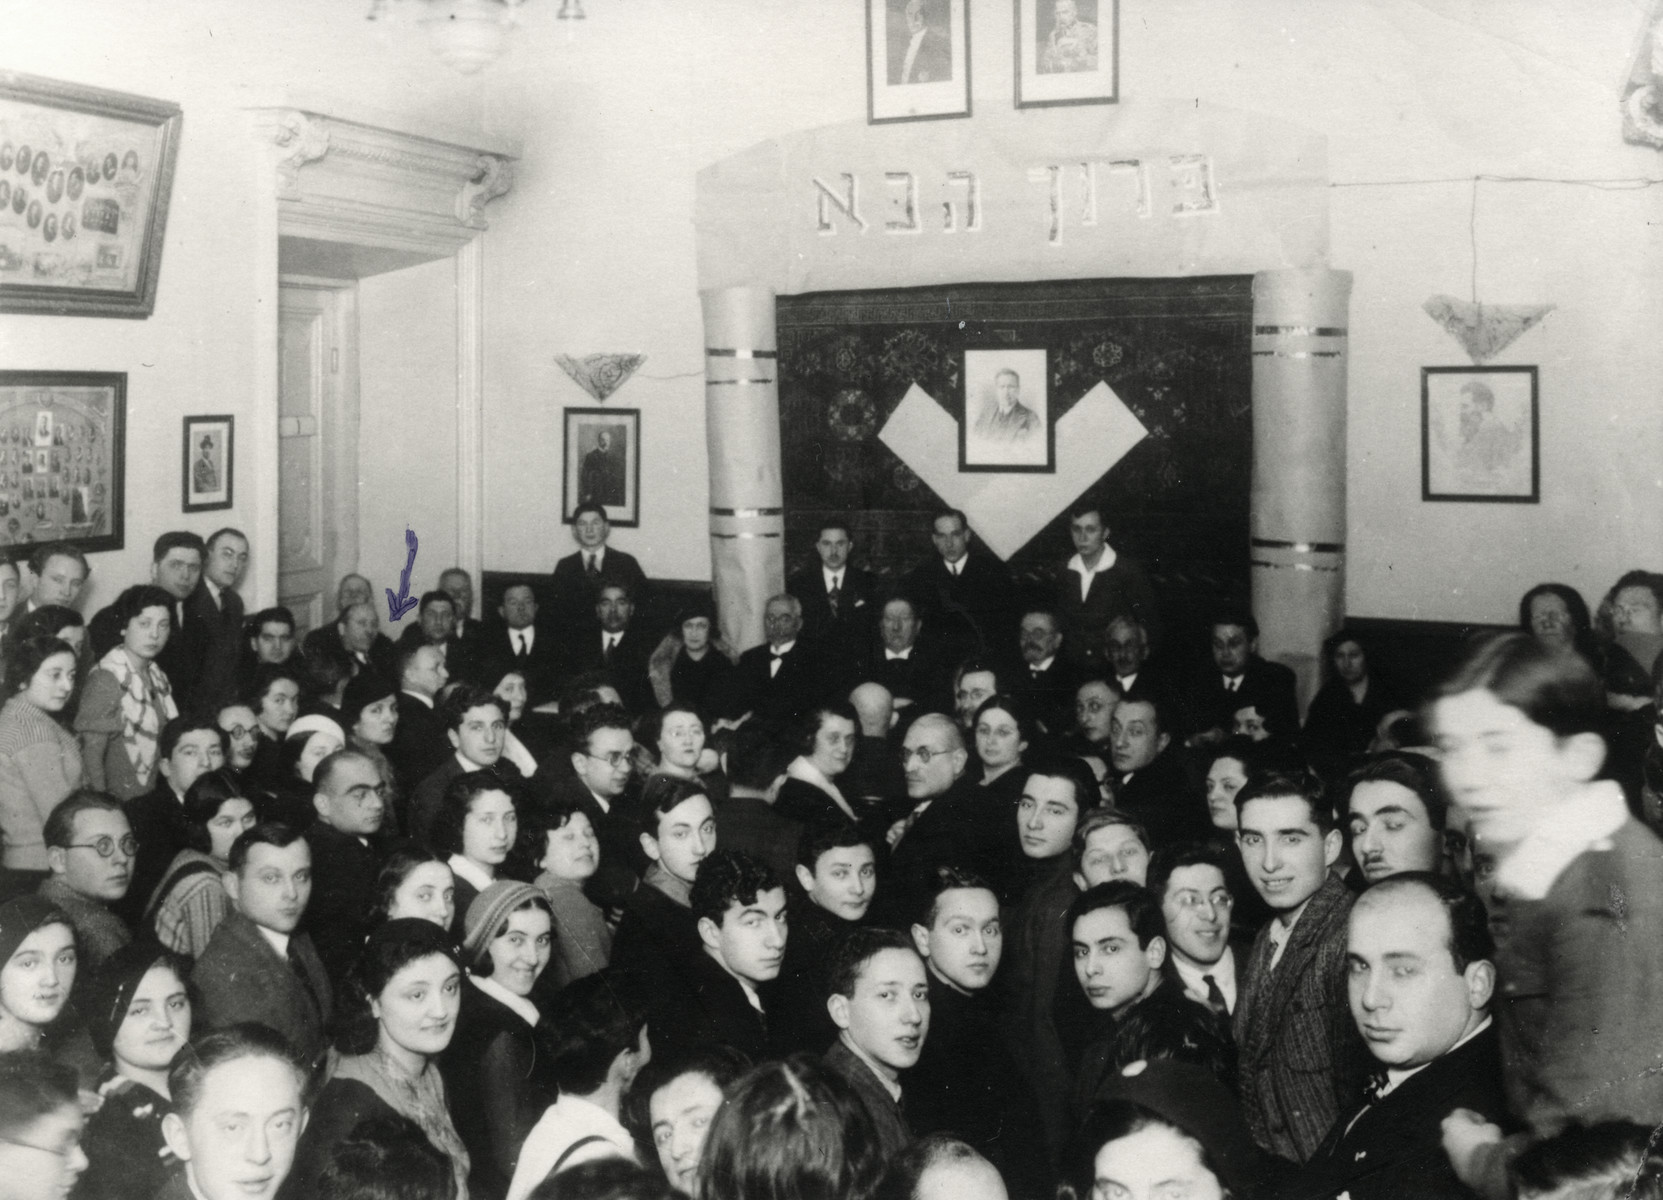 A large crowd gathers to hear the Hebrew poet, Hayyim Nahman Bialik during his visit to Vilna.